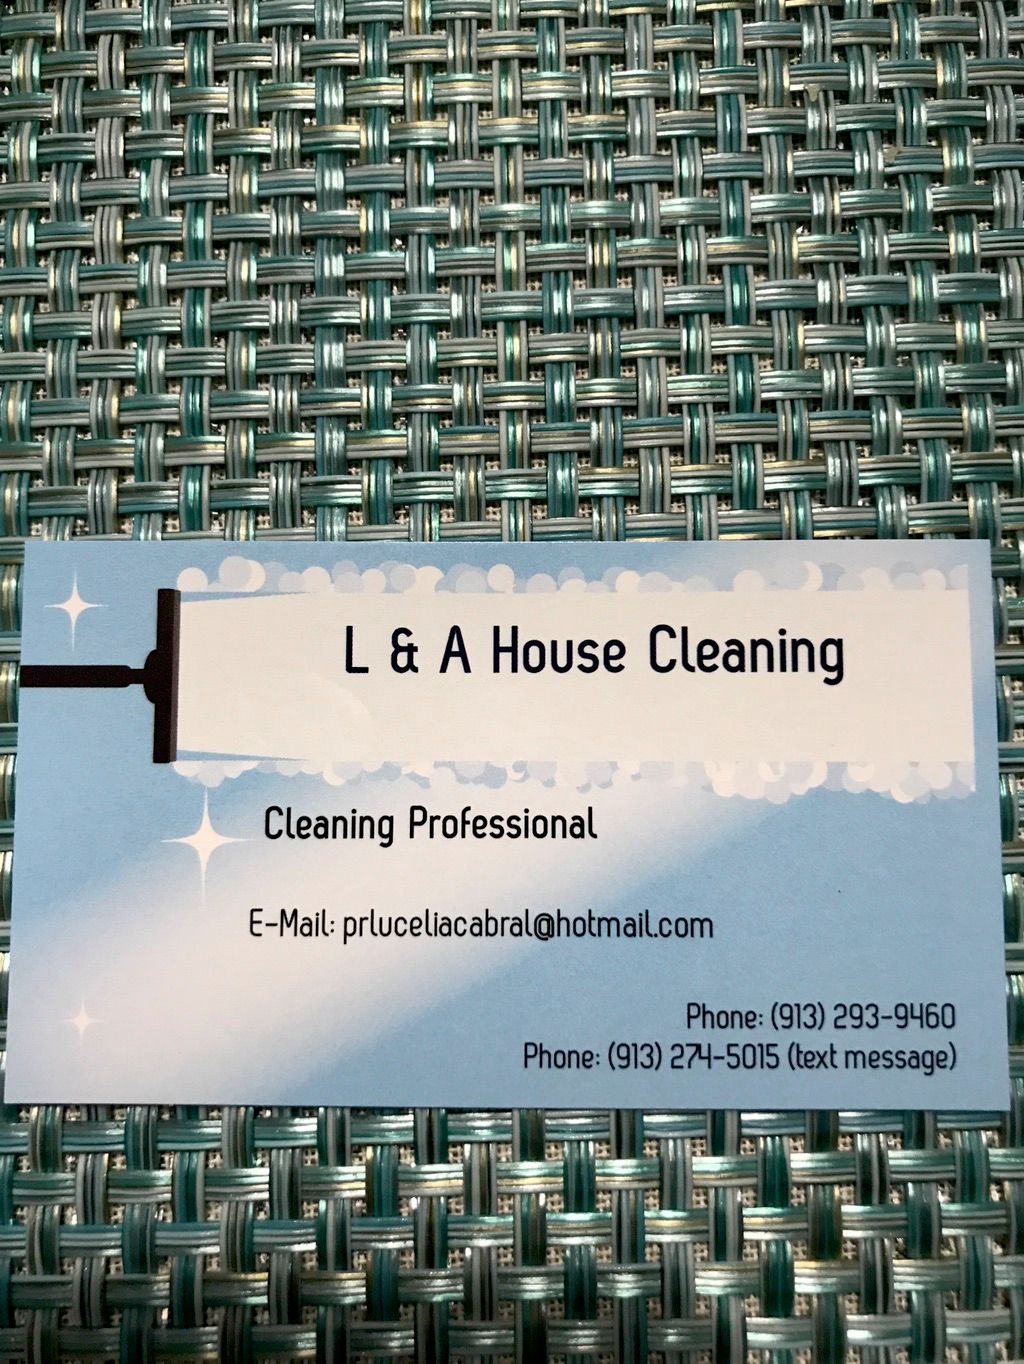 L&A house cleaning